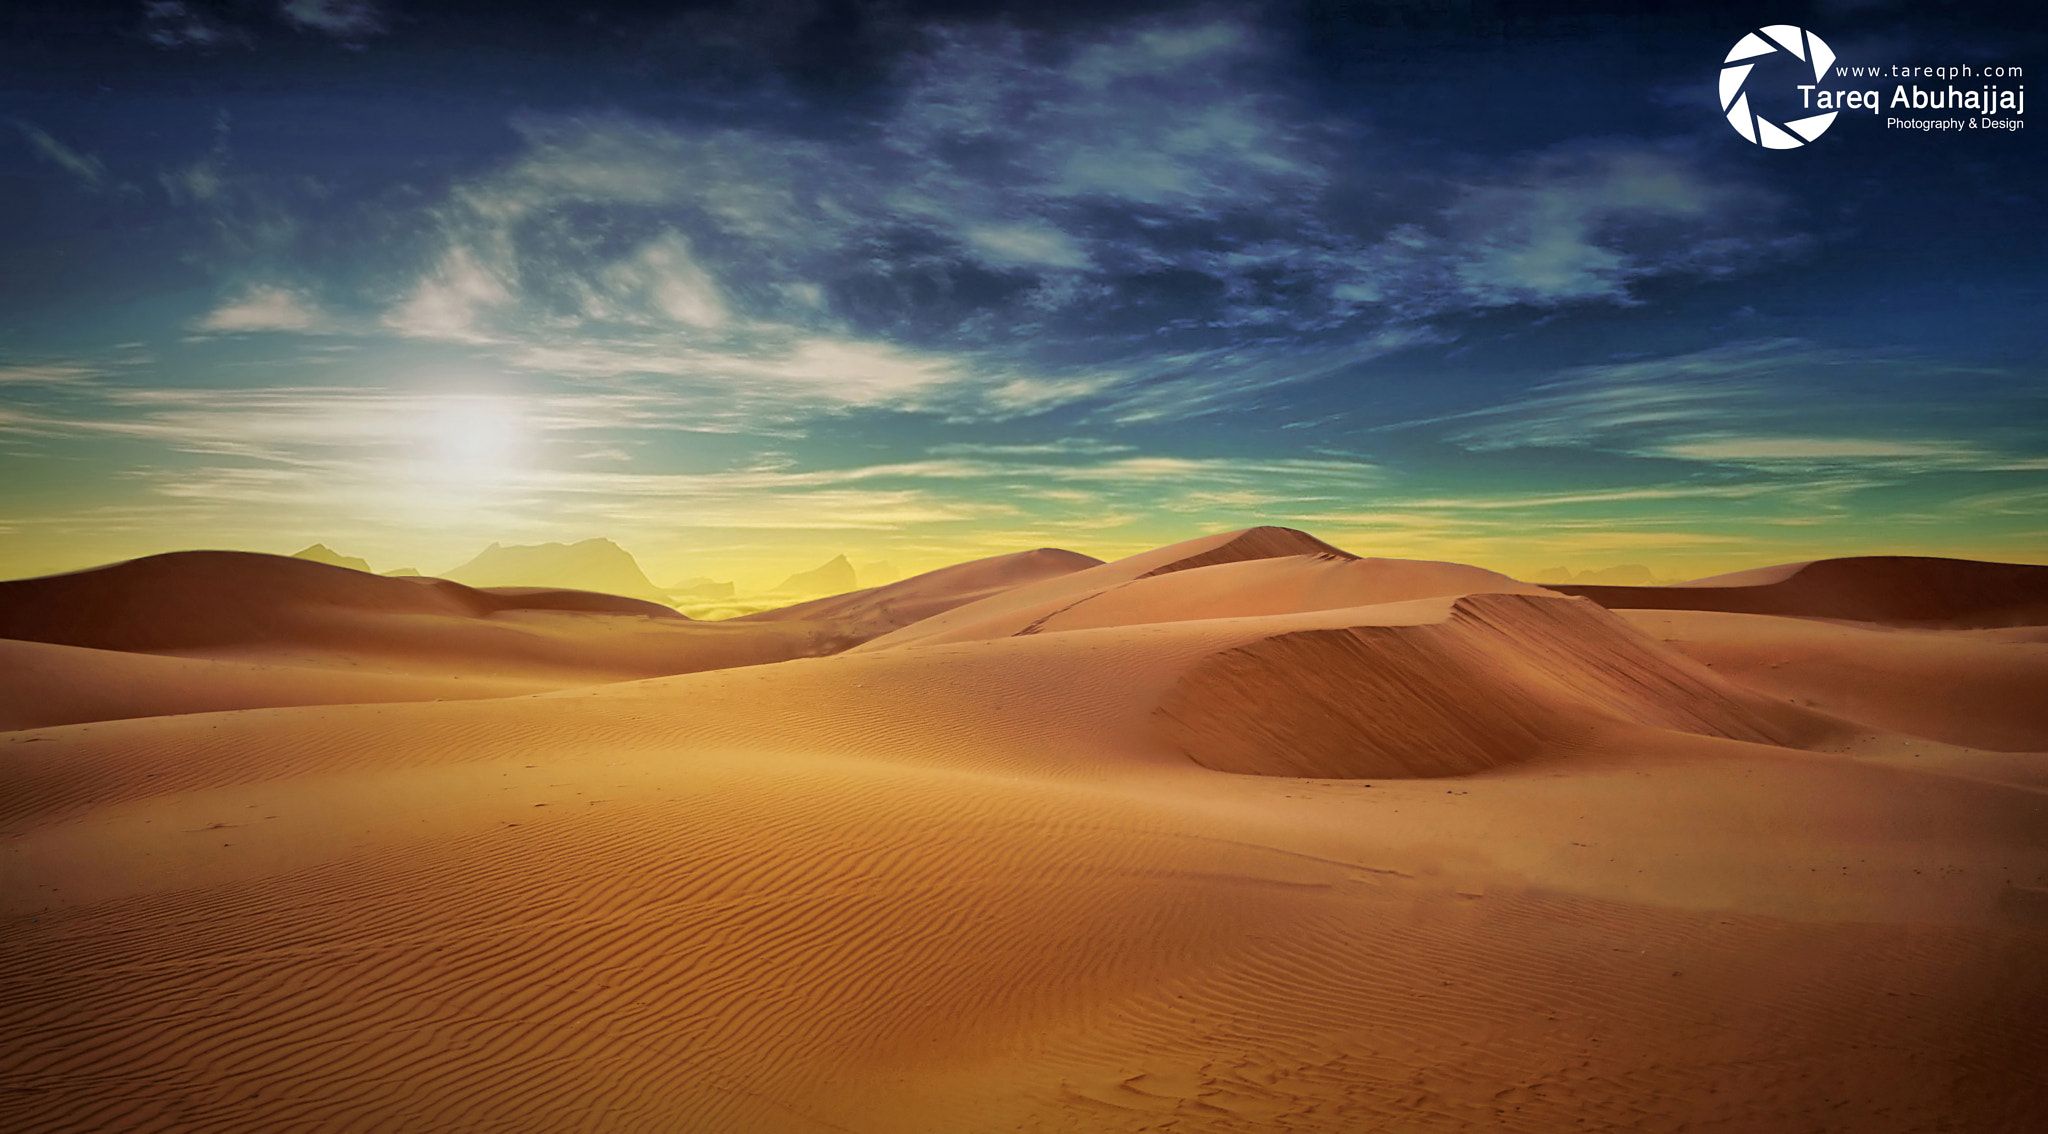 Photograph New day in desert by Tareq Abuhajjaj on 500px